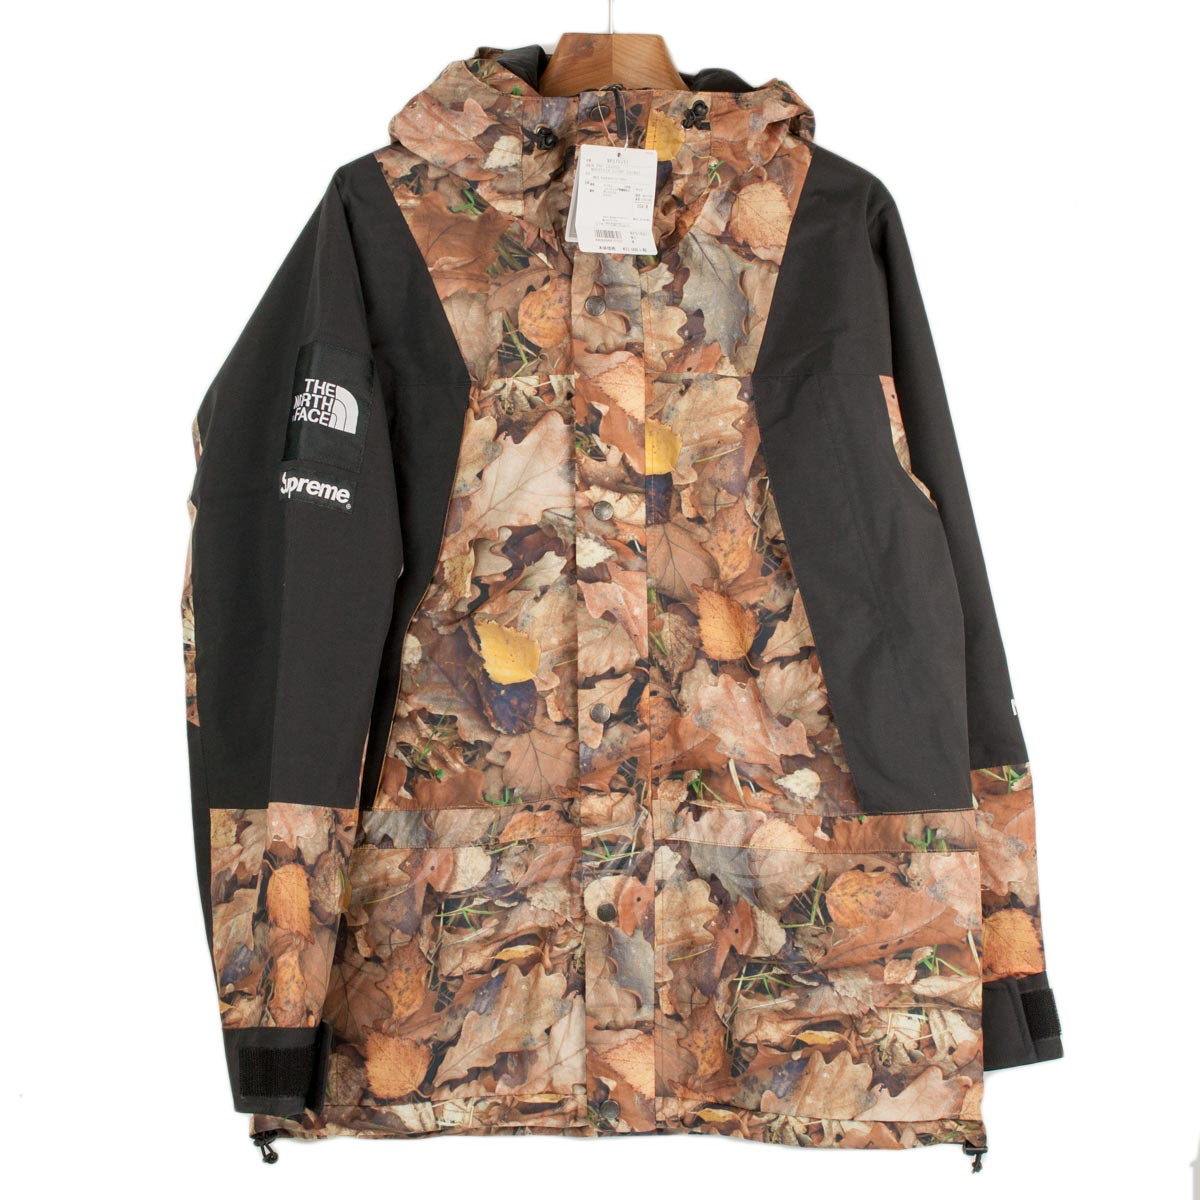 【中古】Supreme x The North Face 2016AW Mountain Light Jacket Leaves 【送料無料】 【000878】 【KIND1489】